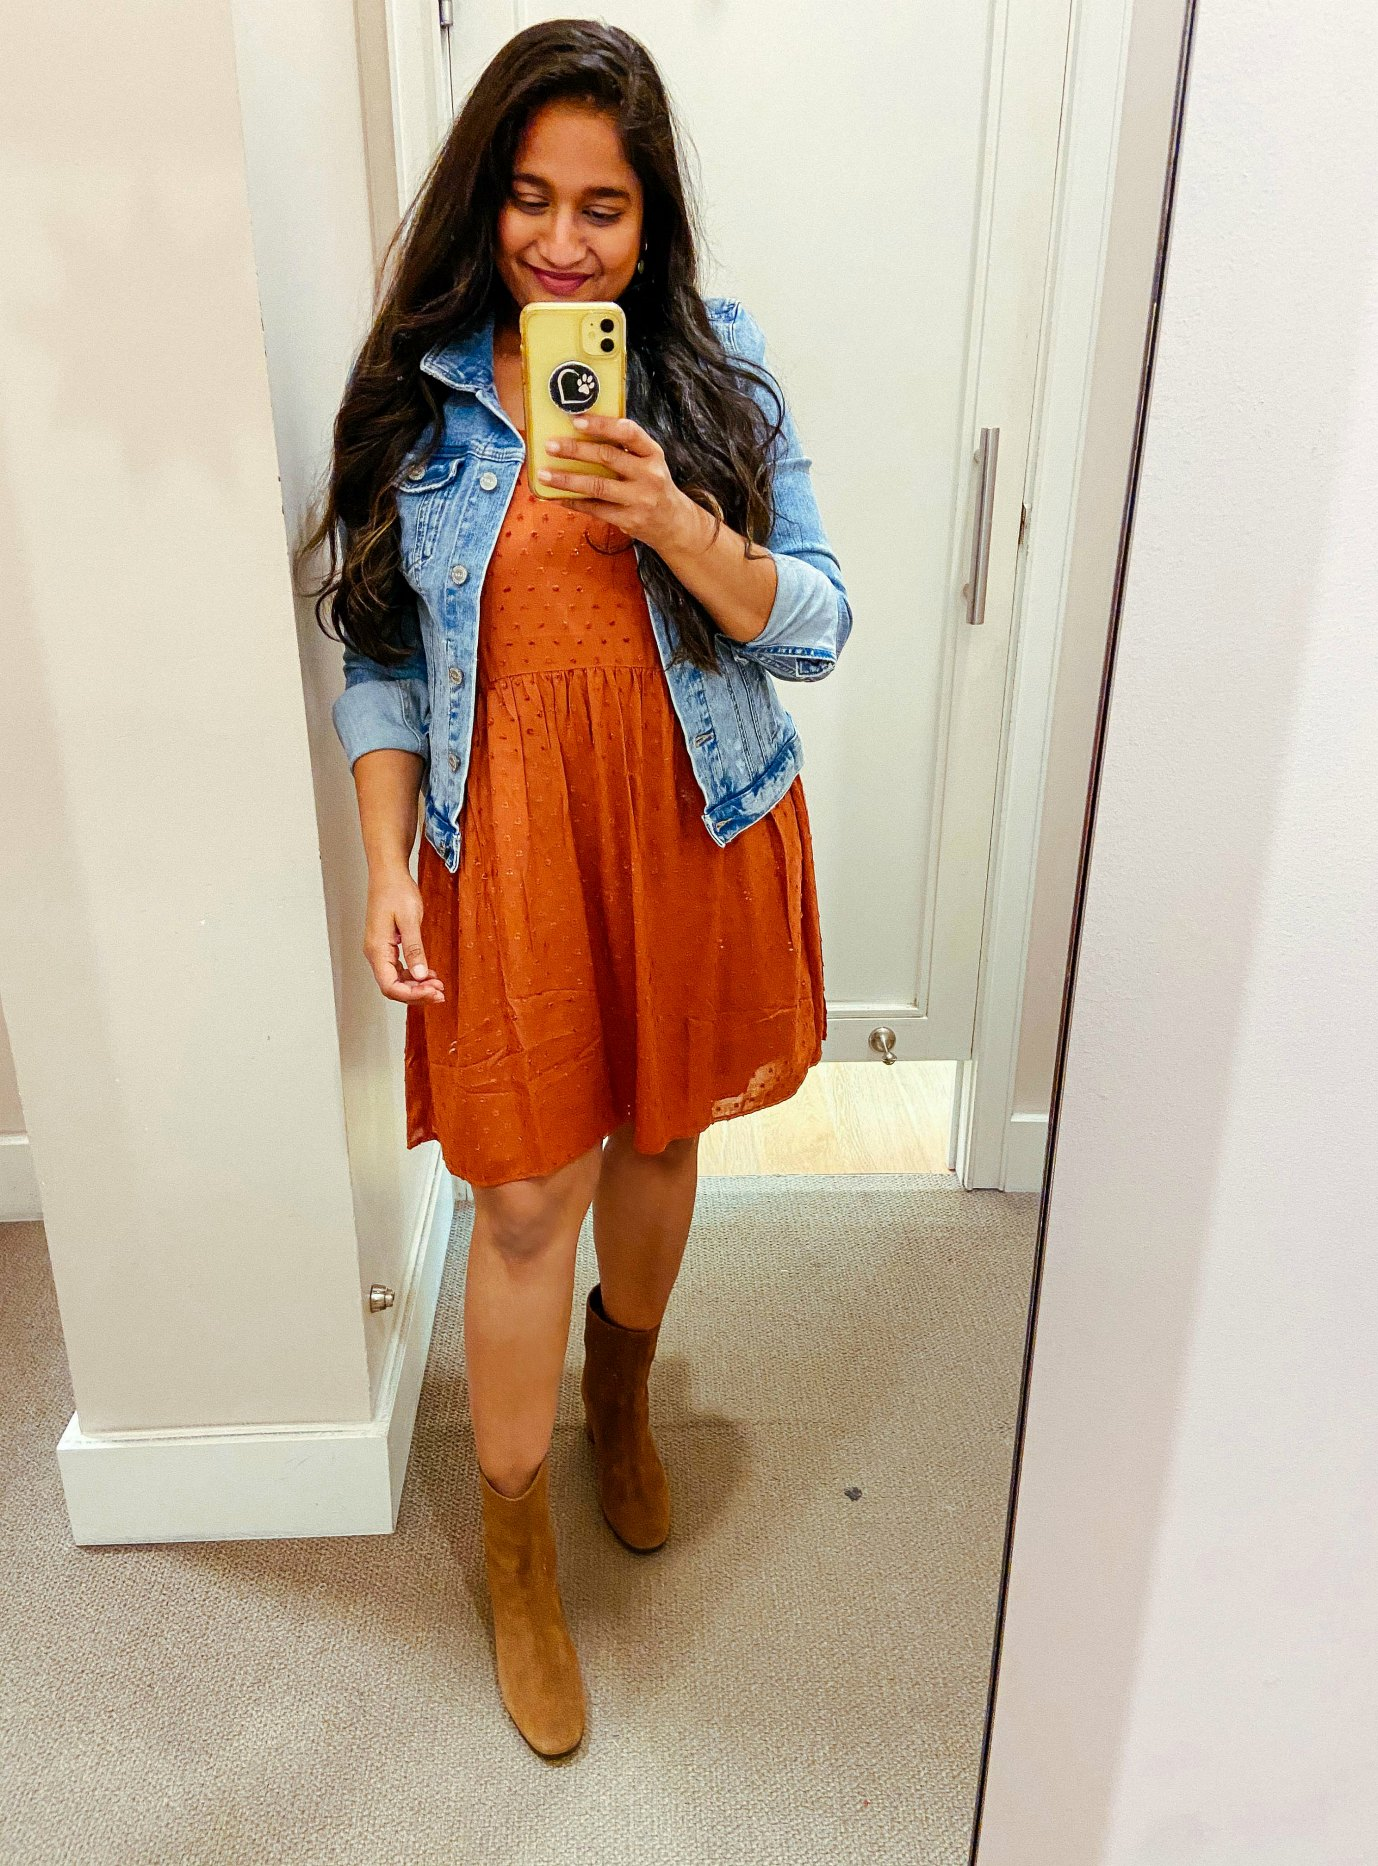 wearing Loft Clip Strappy Swing Dress, Denim jacket, J.crew Suede ankle Boots 1 | Fall Clothing by popular Maryland modest fashion blog, Dreaming Loud: image of a woman wearing a Loft Clip Strappy Swing Dress, Denim jacket, and J.crew Suede ankle Boots.